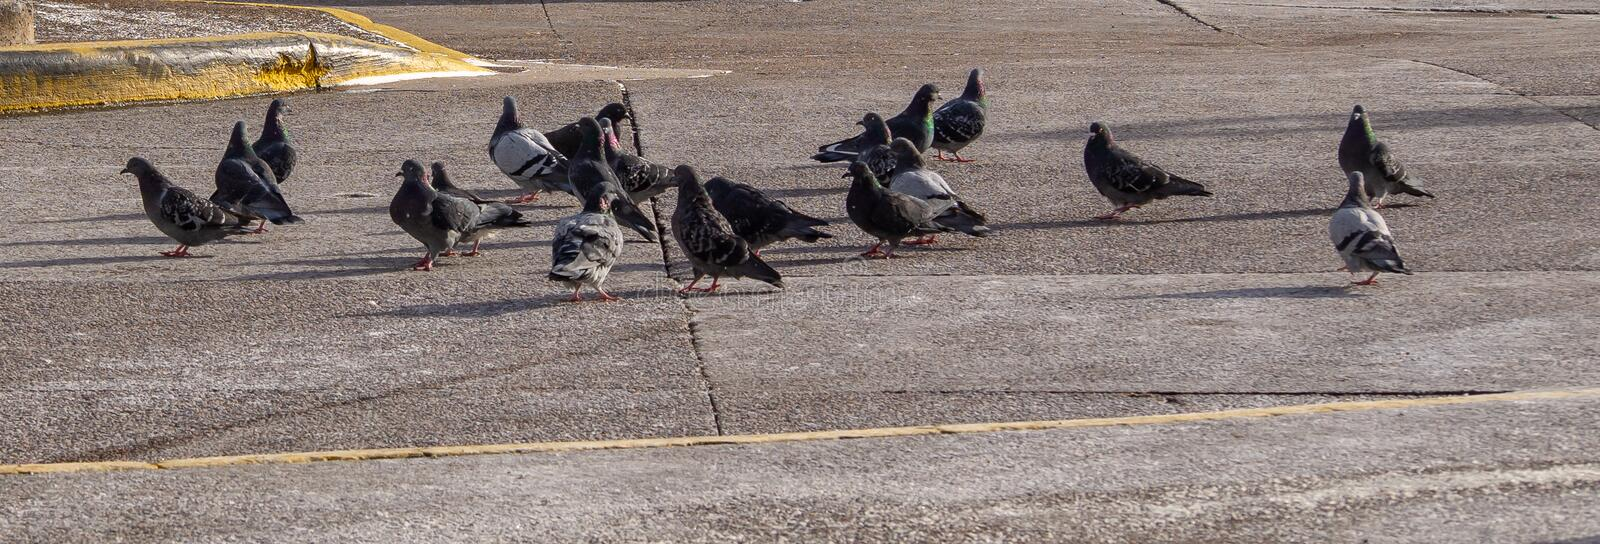 Pigeons flocking together on pavement in autumn sunshine. Pigeons flocking together on pavement in autumn sunshine, no people, no cars stock image